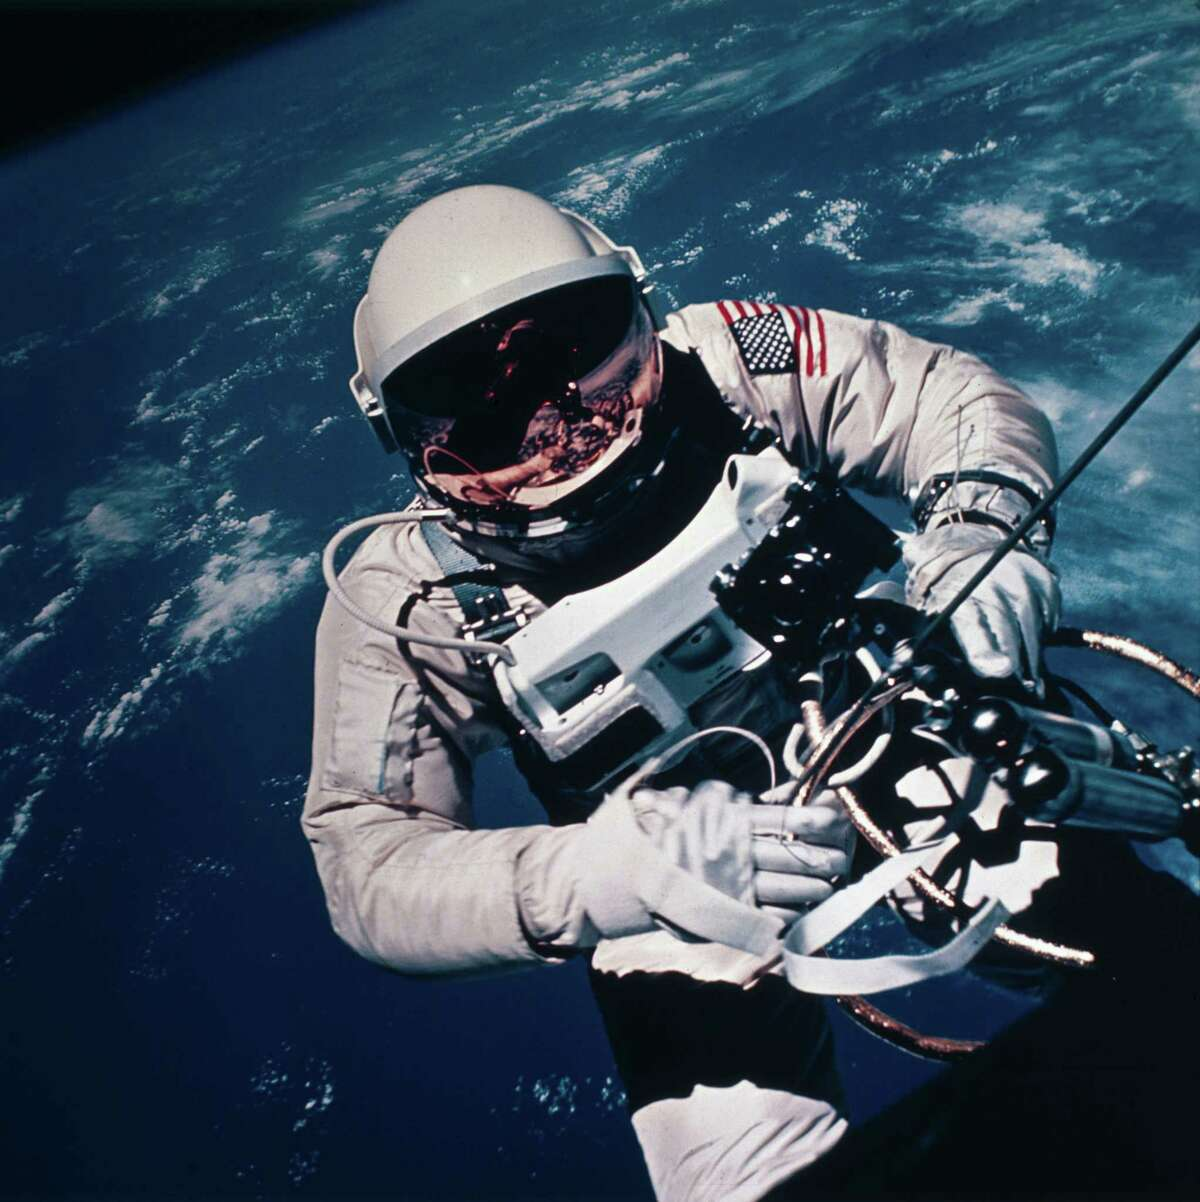 """Jan. 1, 1965 : Gemini 4 astronaut Ed White made the first spacewalk or EVA (extra vehicular activity) by an American. He spent more than 20 minutes outside his spacecraft. The """"umbilical cord"""" connecting him to the capsule supplied him with oxygen, and he held a rocket gun which he fired to help him move around in the vacuum of space. Gemini 4, crewed by James McDivitt and White, was launched on June 3, 1965 and completed 62 Earth orbits. It was the second manned launch of NASA's two-man Gemini spacecraft."""